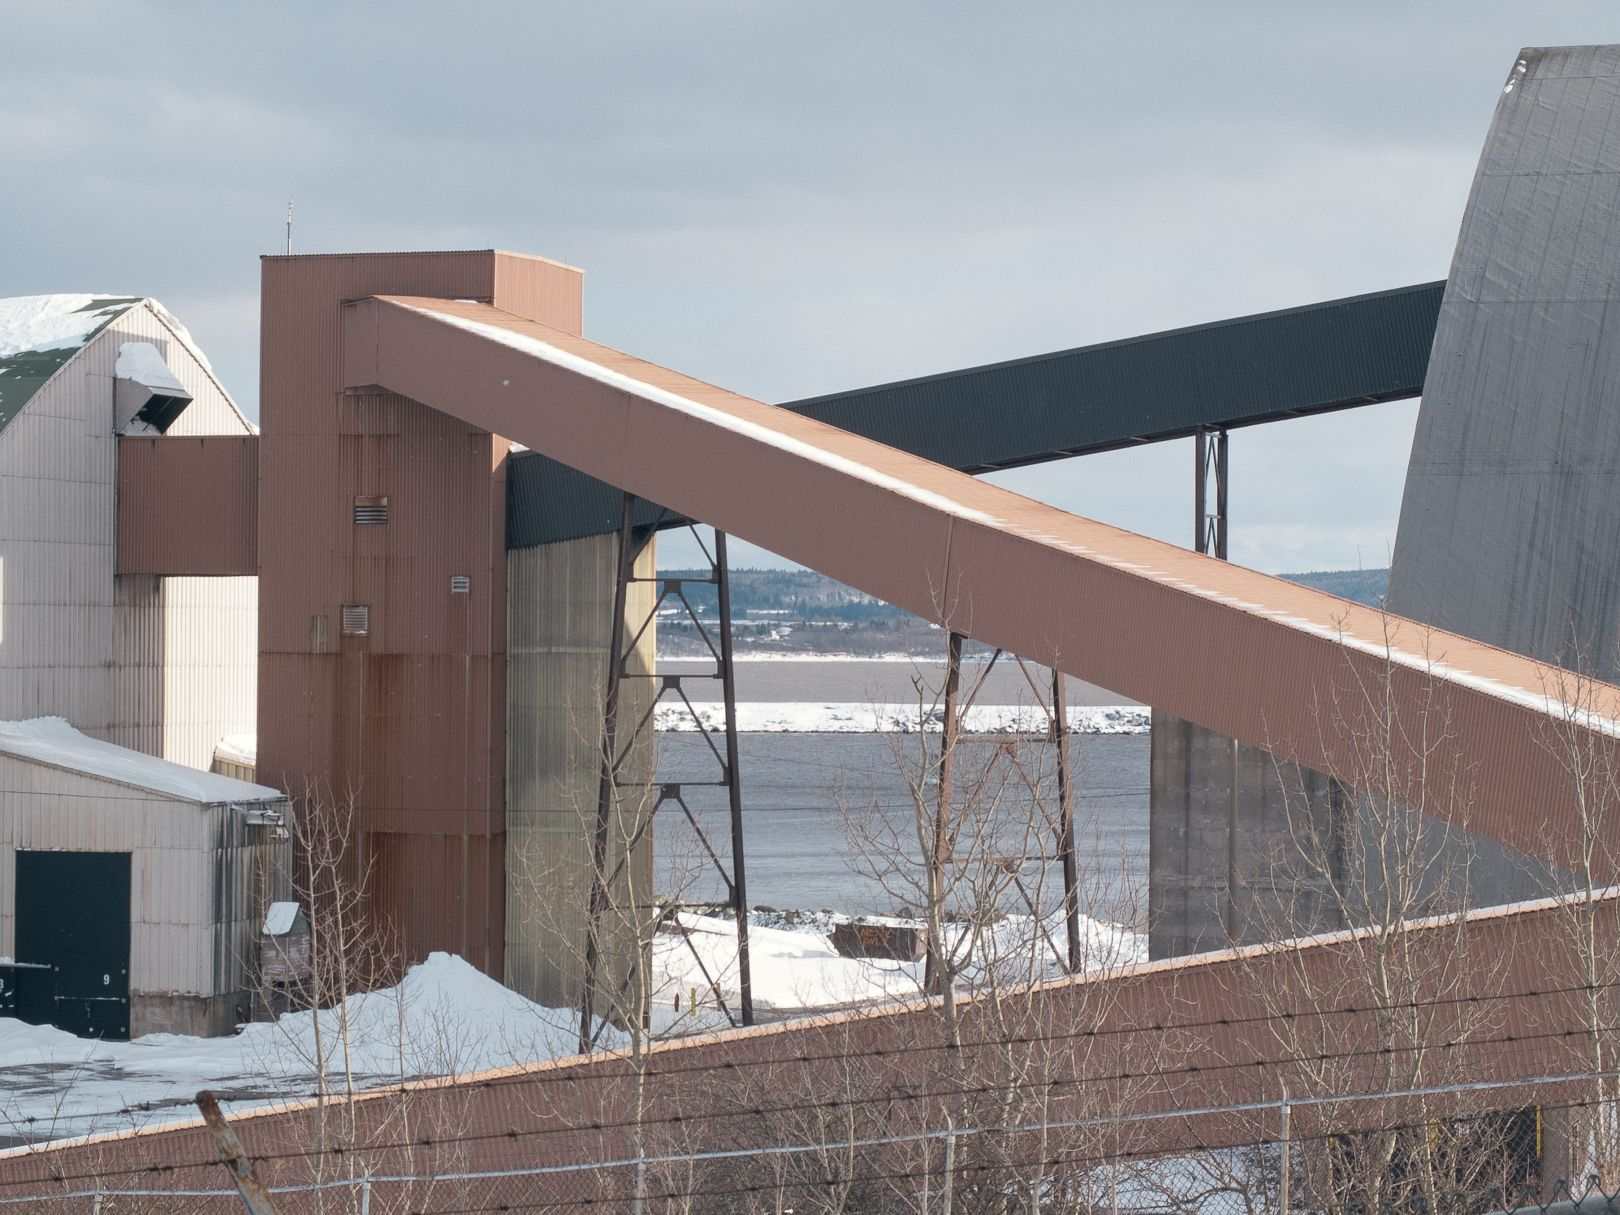 A photo of Potash Terminal Saint John Photograph